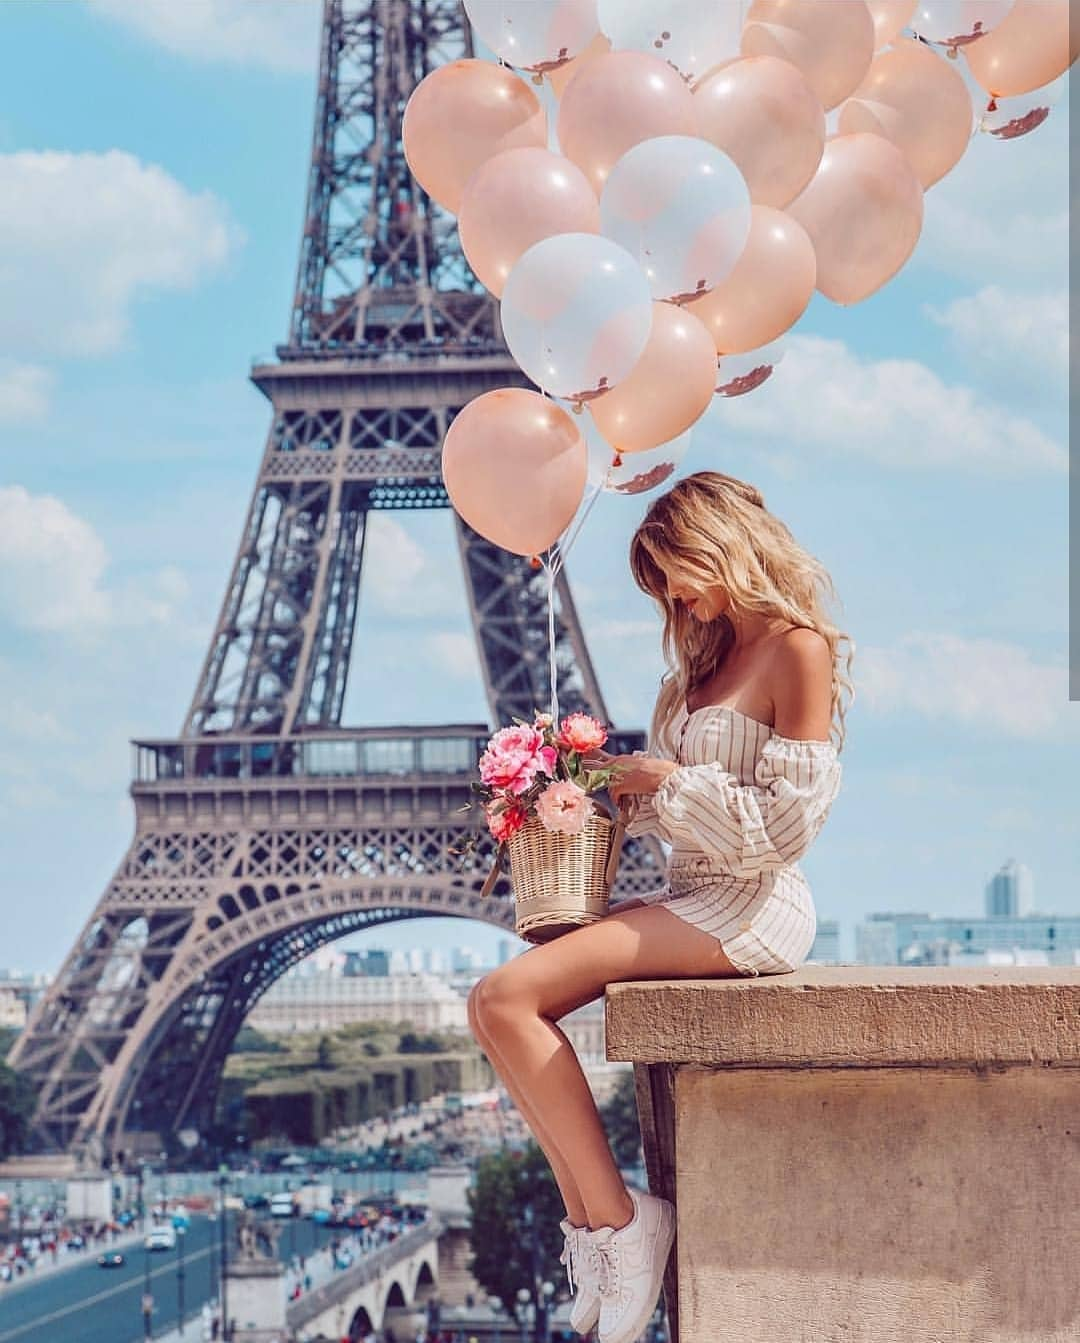 Off Shoulder Romper With Sleeves For Summer In Paris 2019